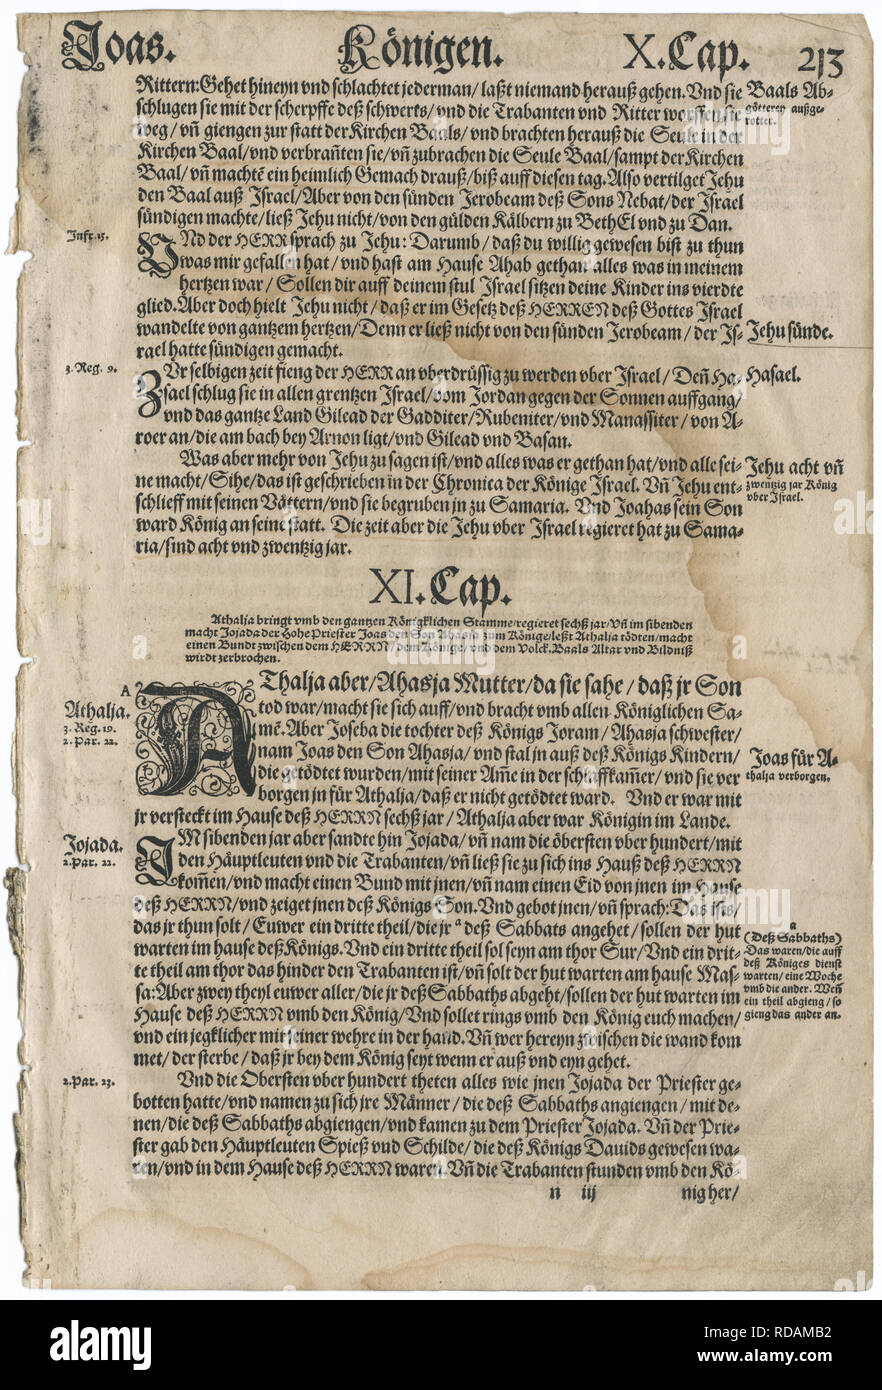 Leaf from a 1567 German language Bible, translated from the Greek and Hebrew by Martin Luther. Text shown is from the Old Testament book of II Kings. - Stock Image